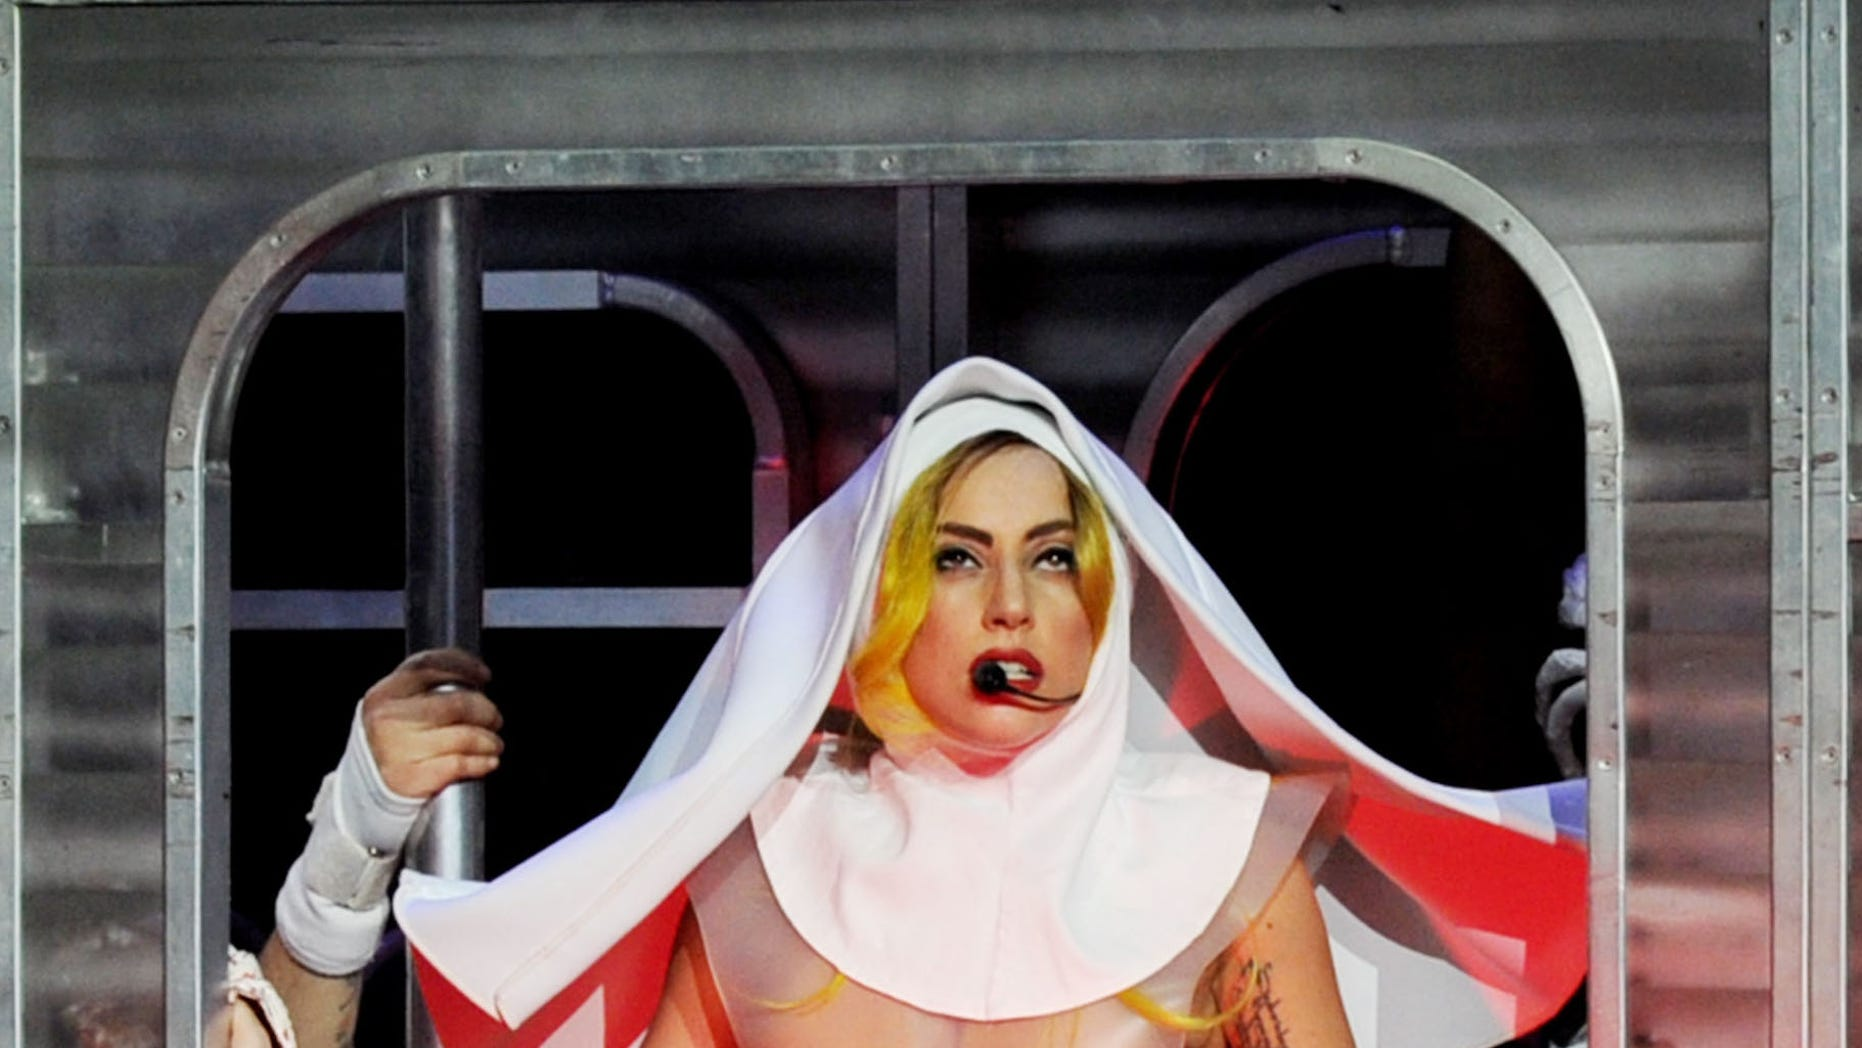 LOS ANGELES, CA - MARCH 28:  (NO ARCHIVES/EDITORIAL USE ONLY) Singer Lady Gaga performs onstage at the Staples Center on March 28, 2011 in Los Angeles, California.  (Photo by Kevin Winter/Getty Images)